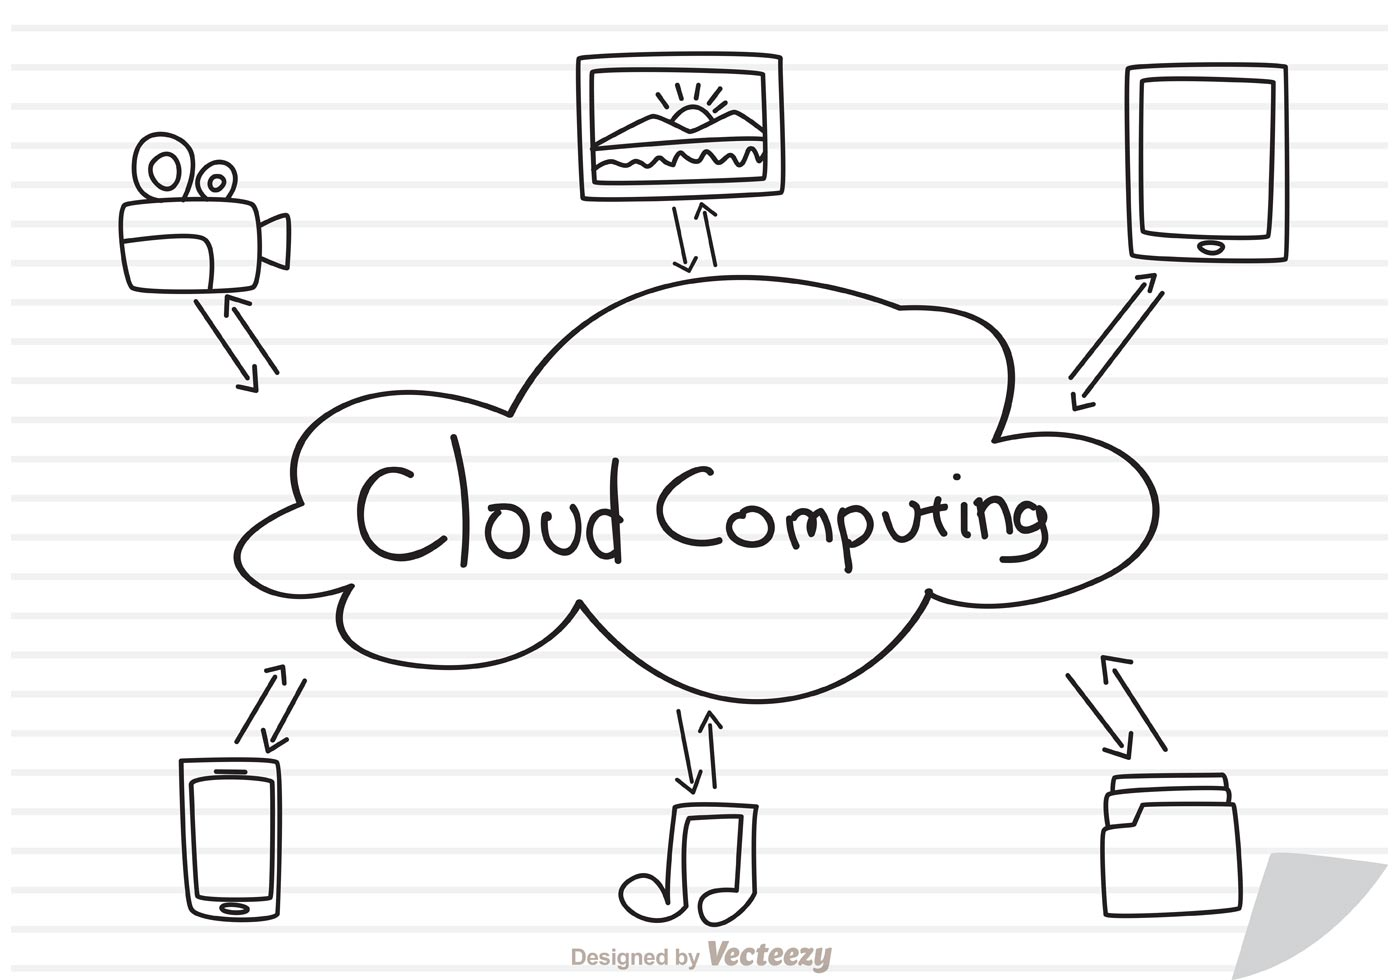 Research paper on cloud computing services | Norex International